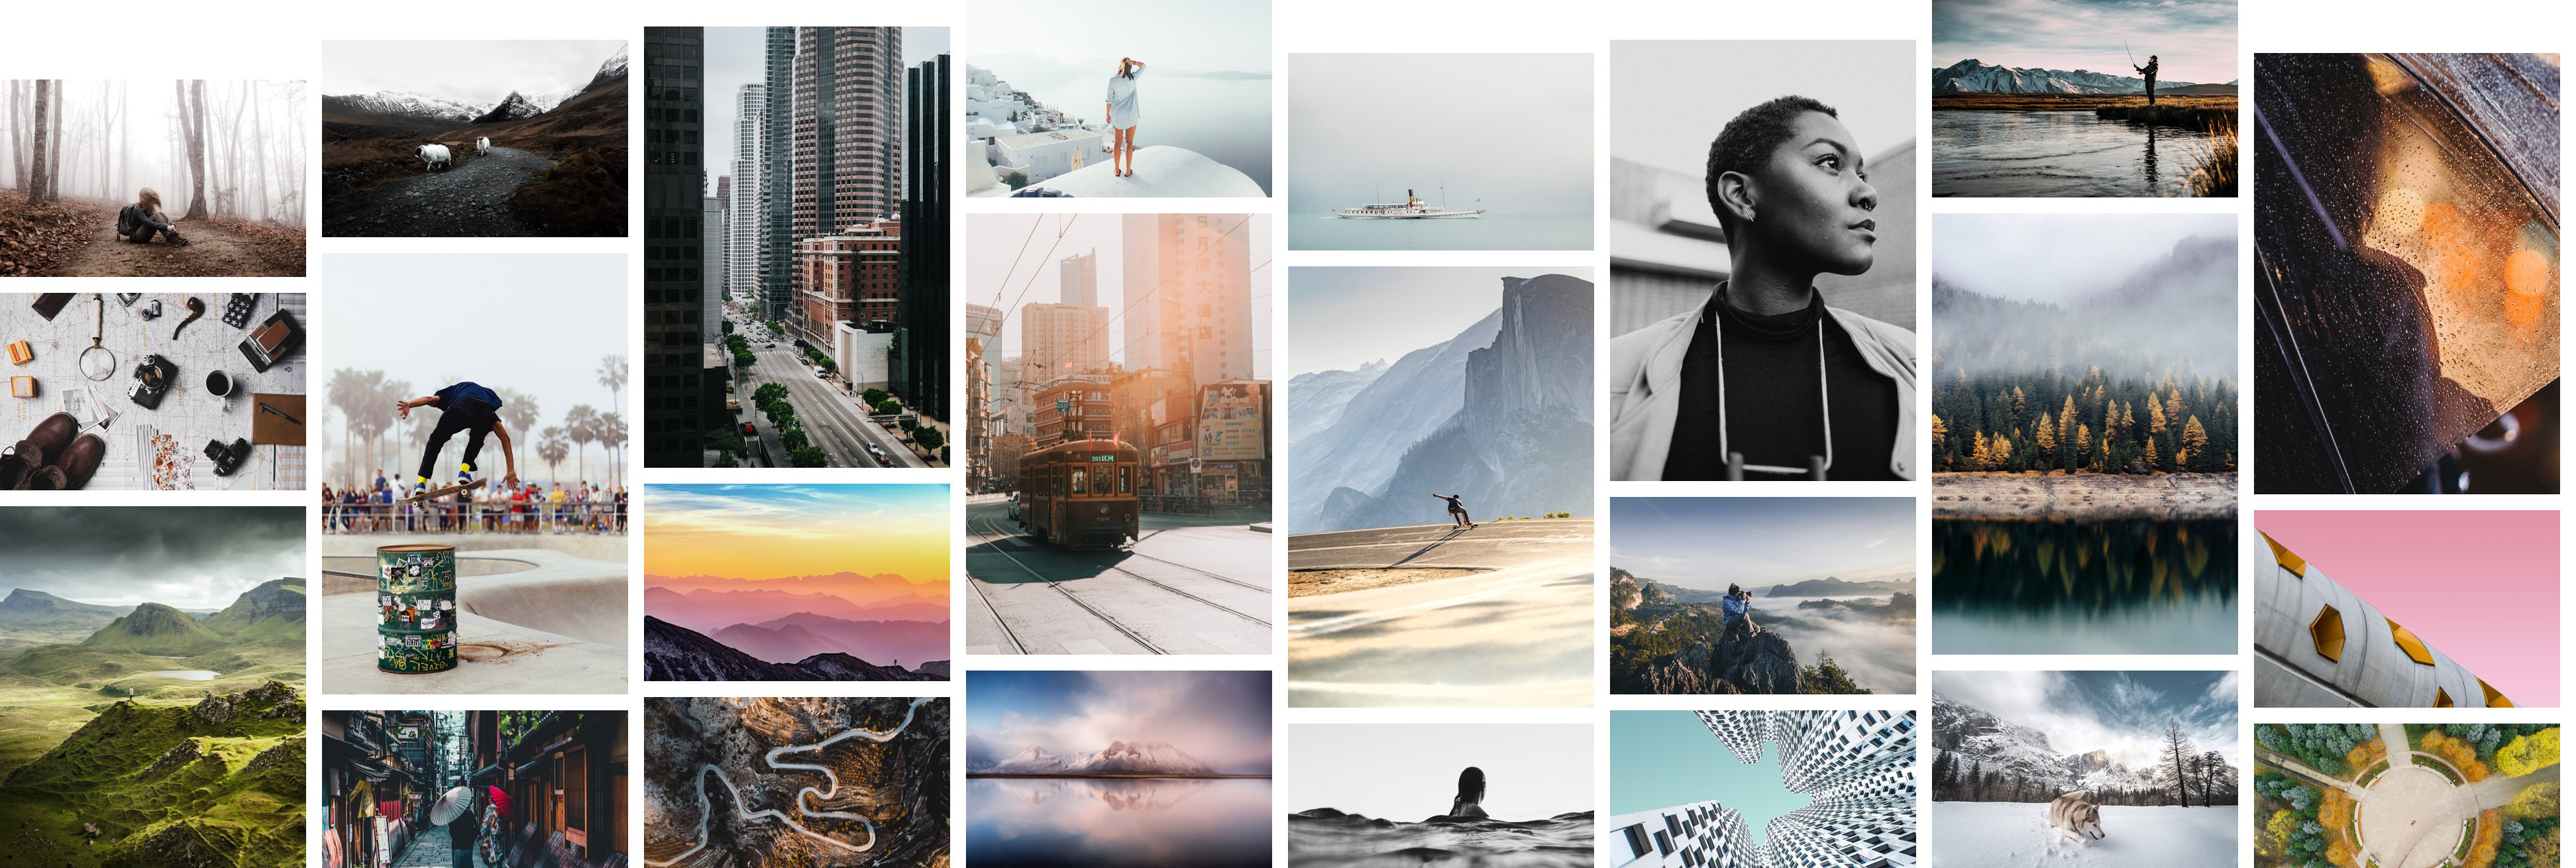 unsplash grid